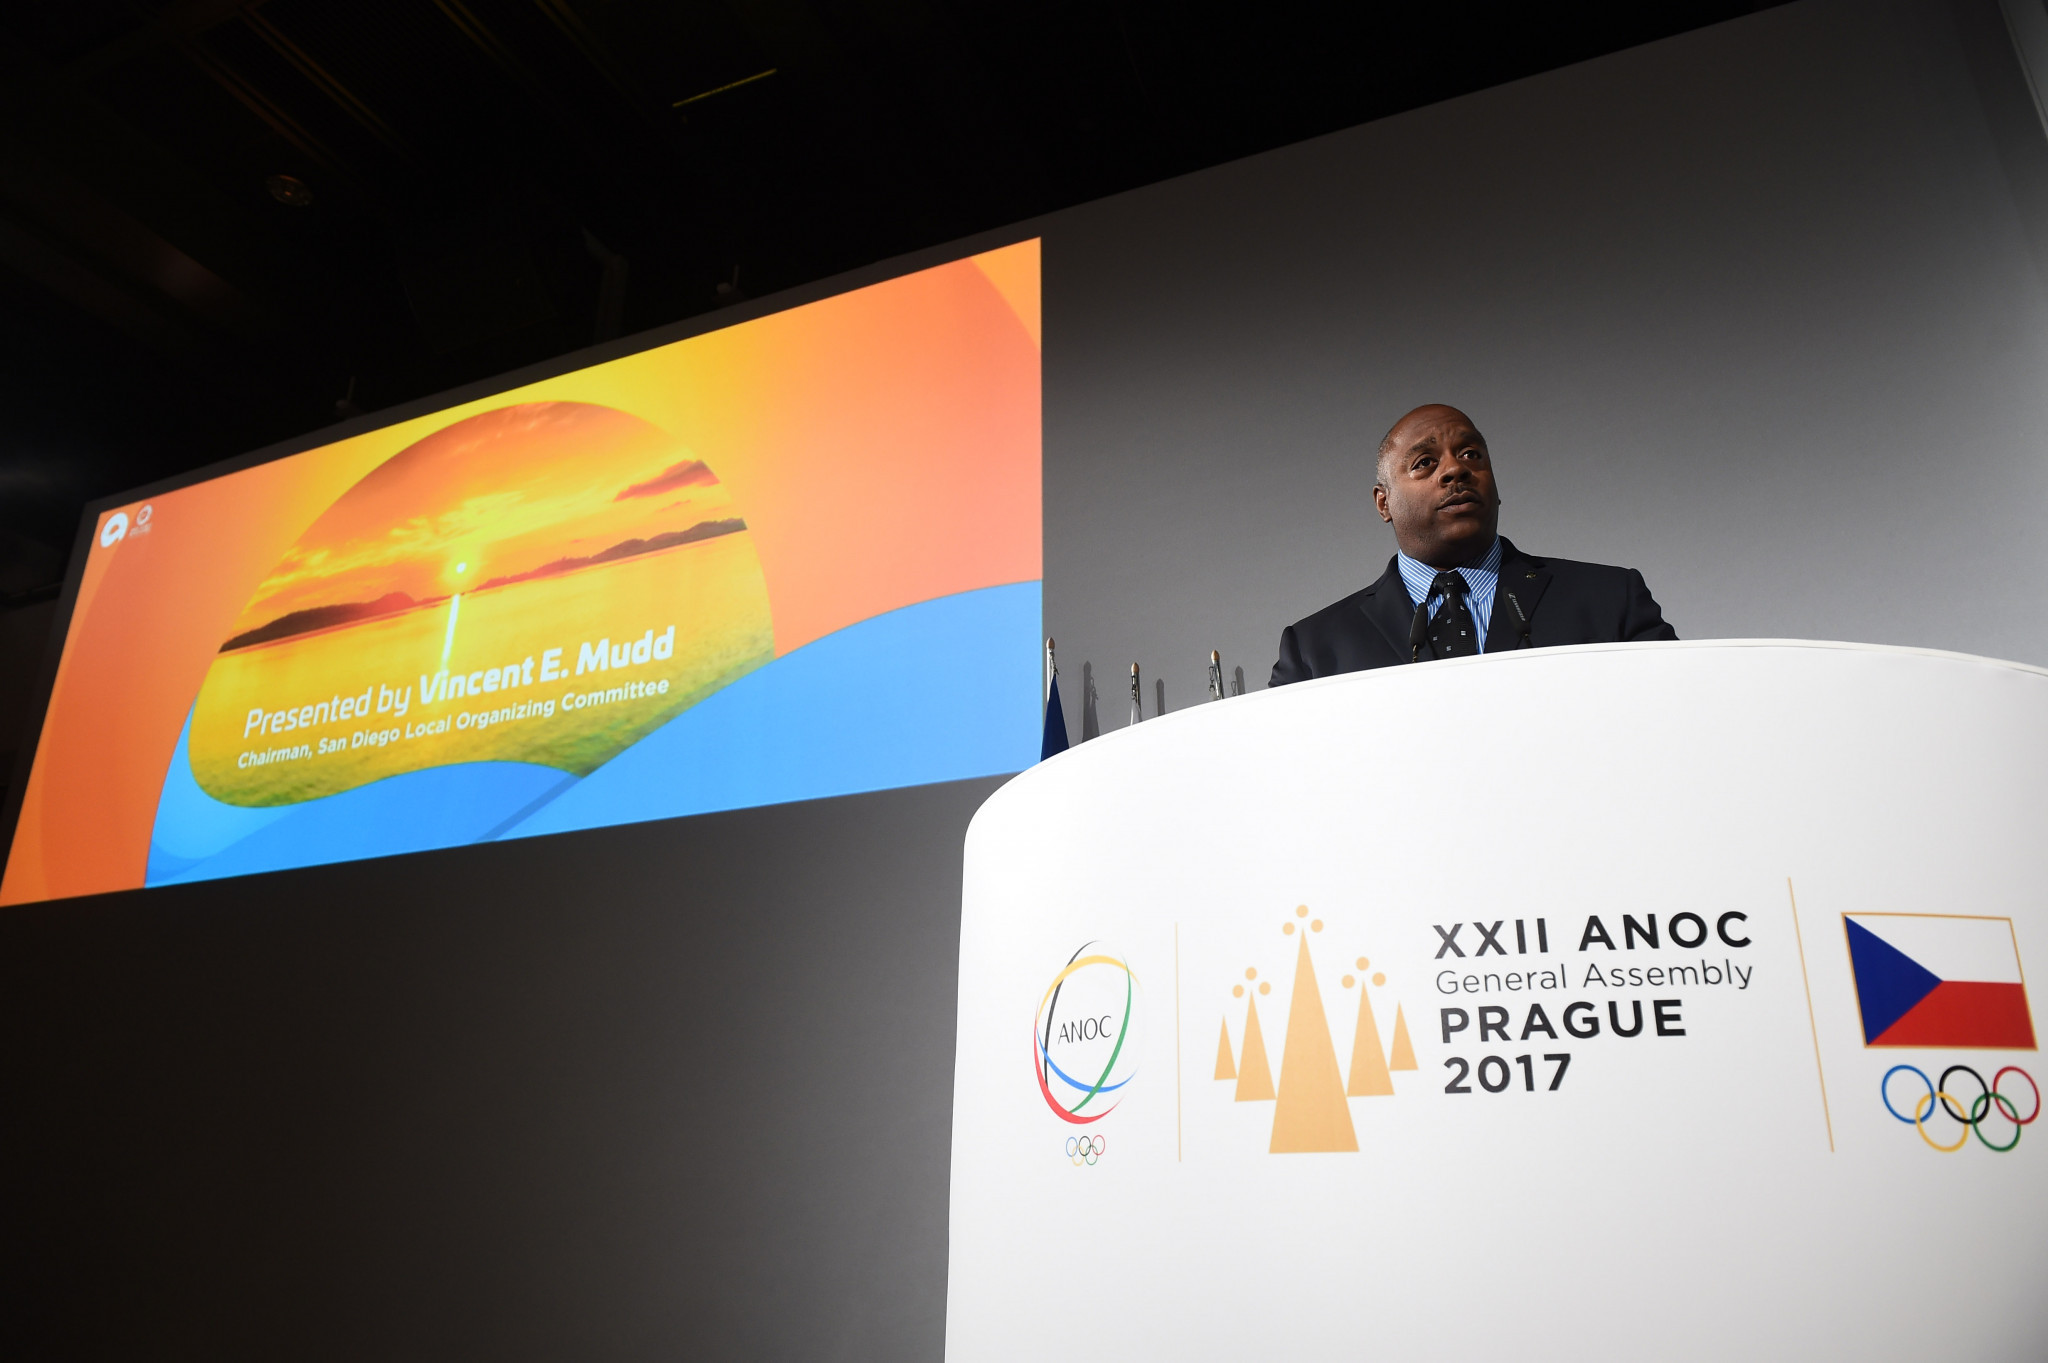 San Diego 2019 chairman Vincent Mudd presented the concept in Prague last week ©Getty Images